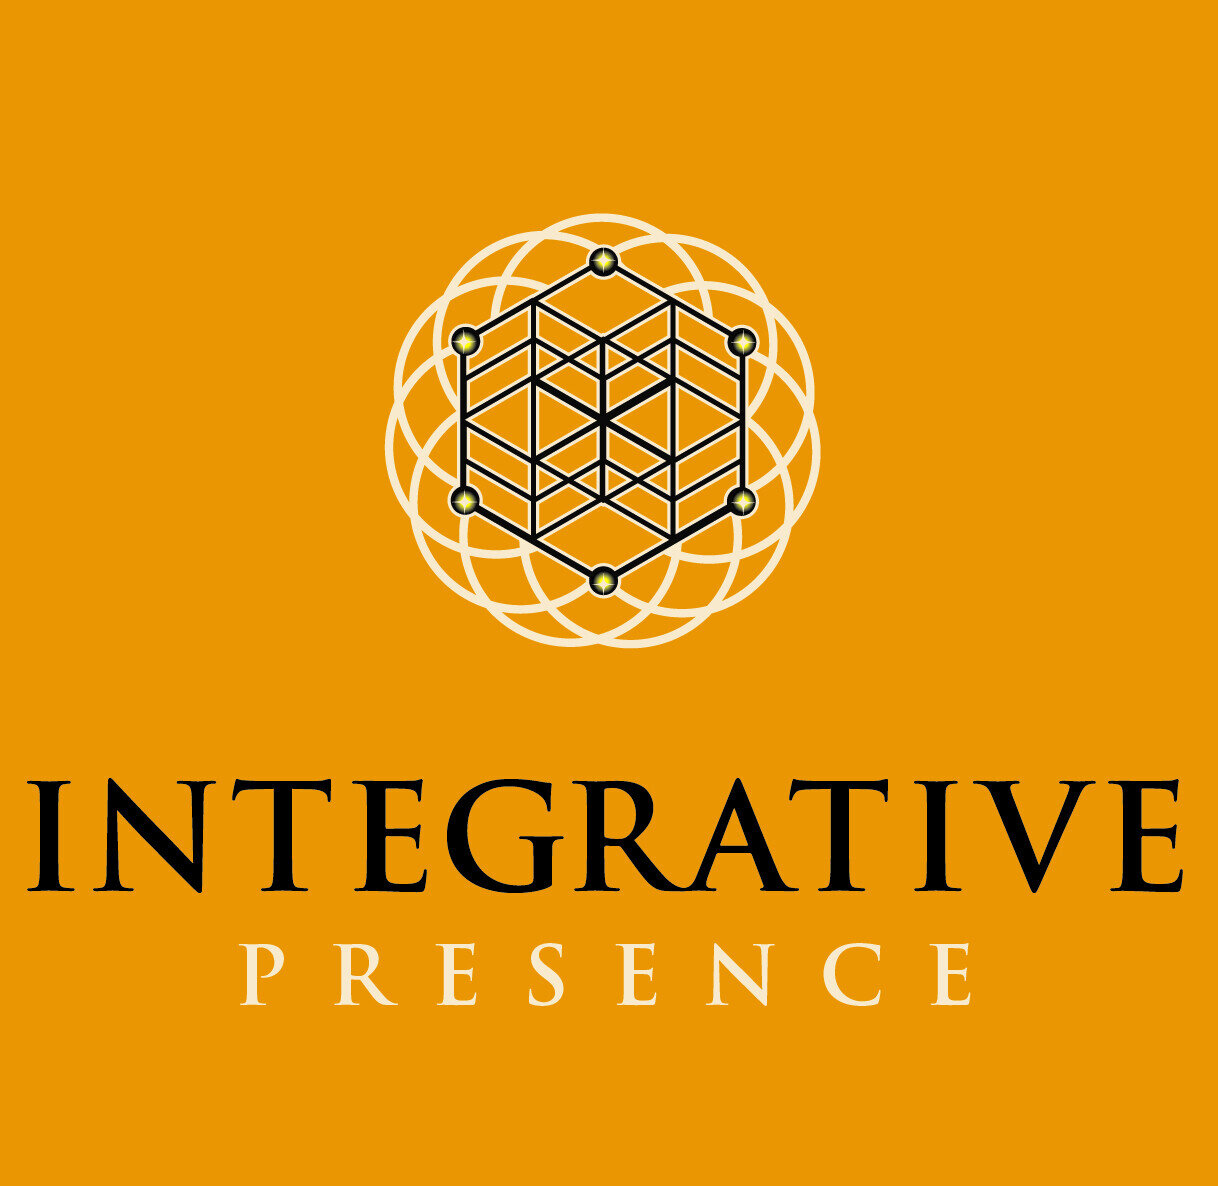 Masterclass - Integrative Presence Introduction